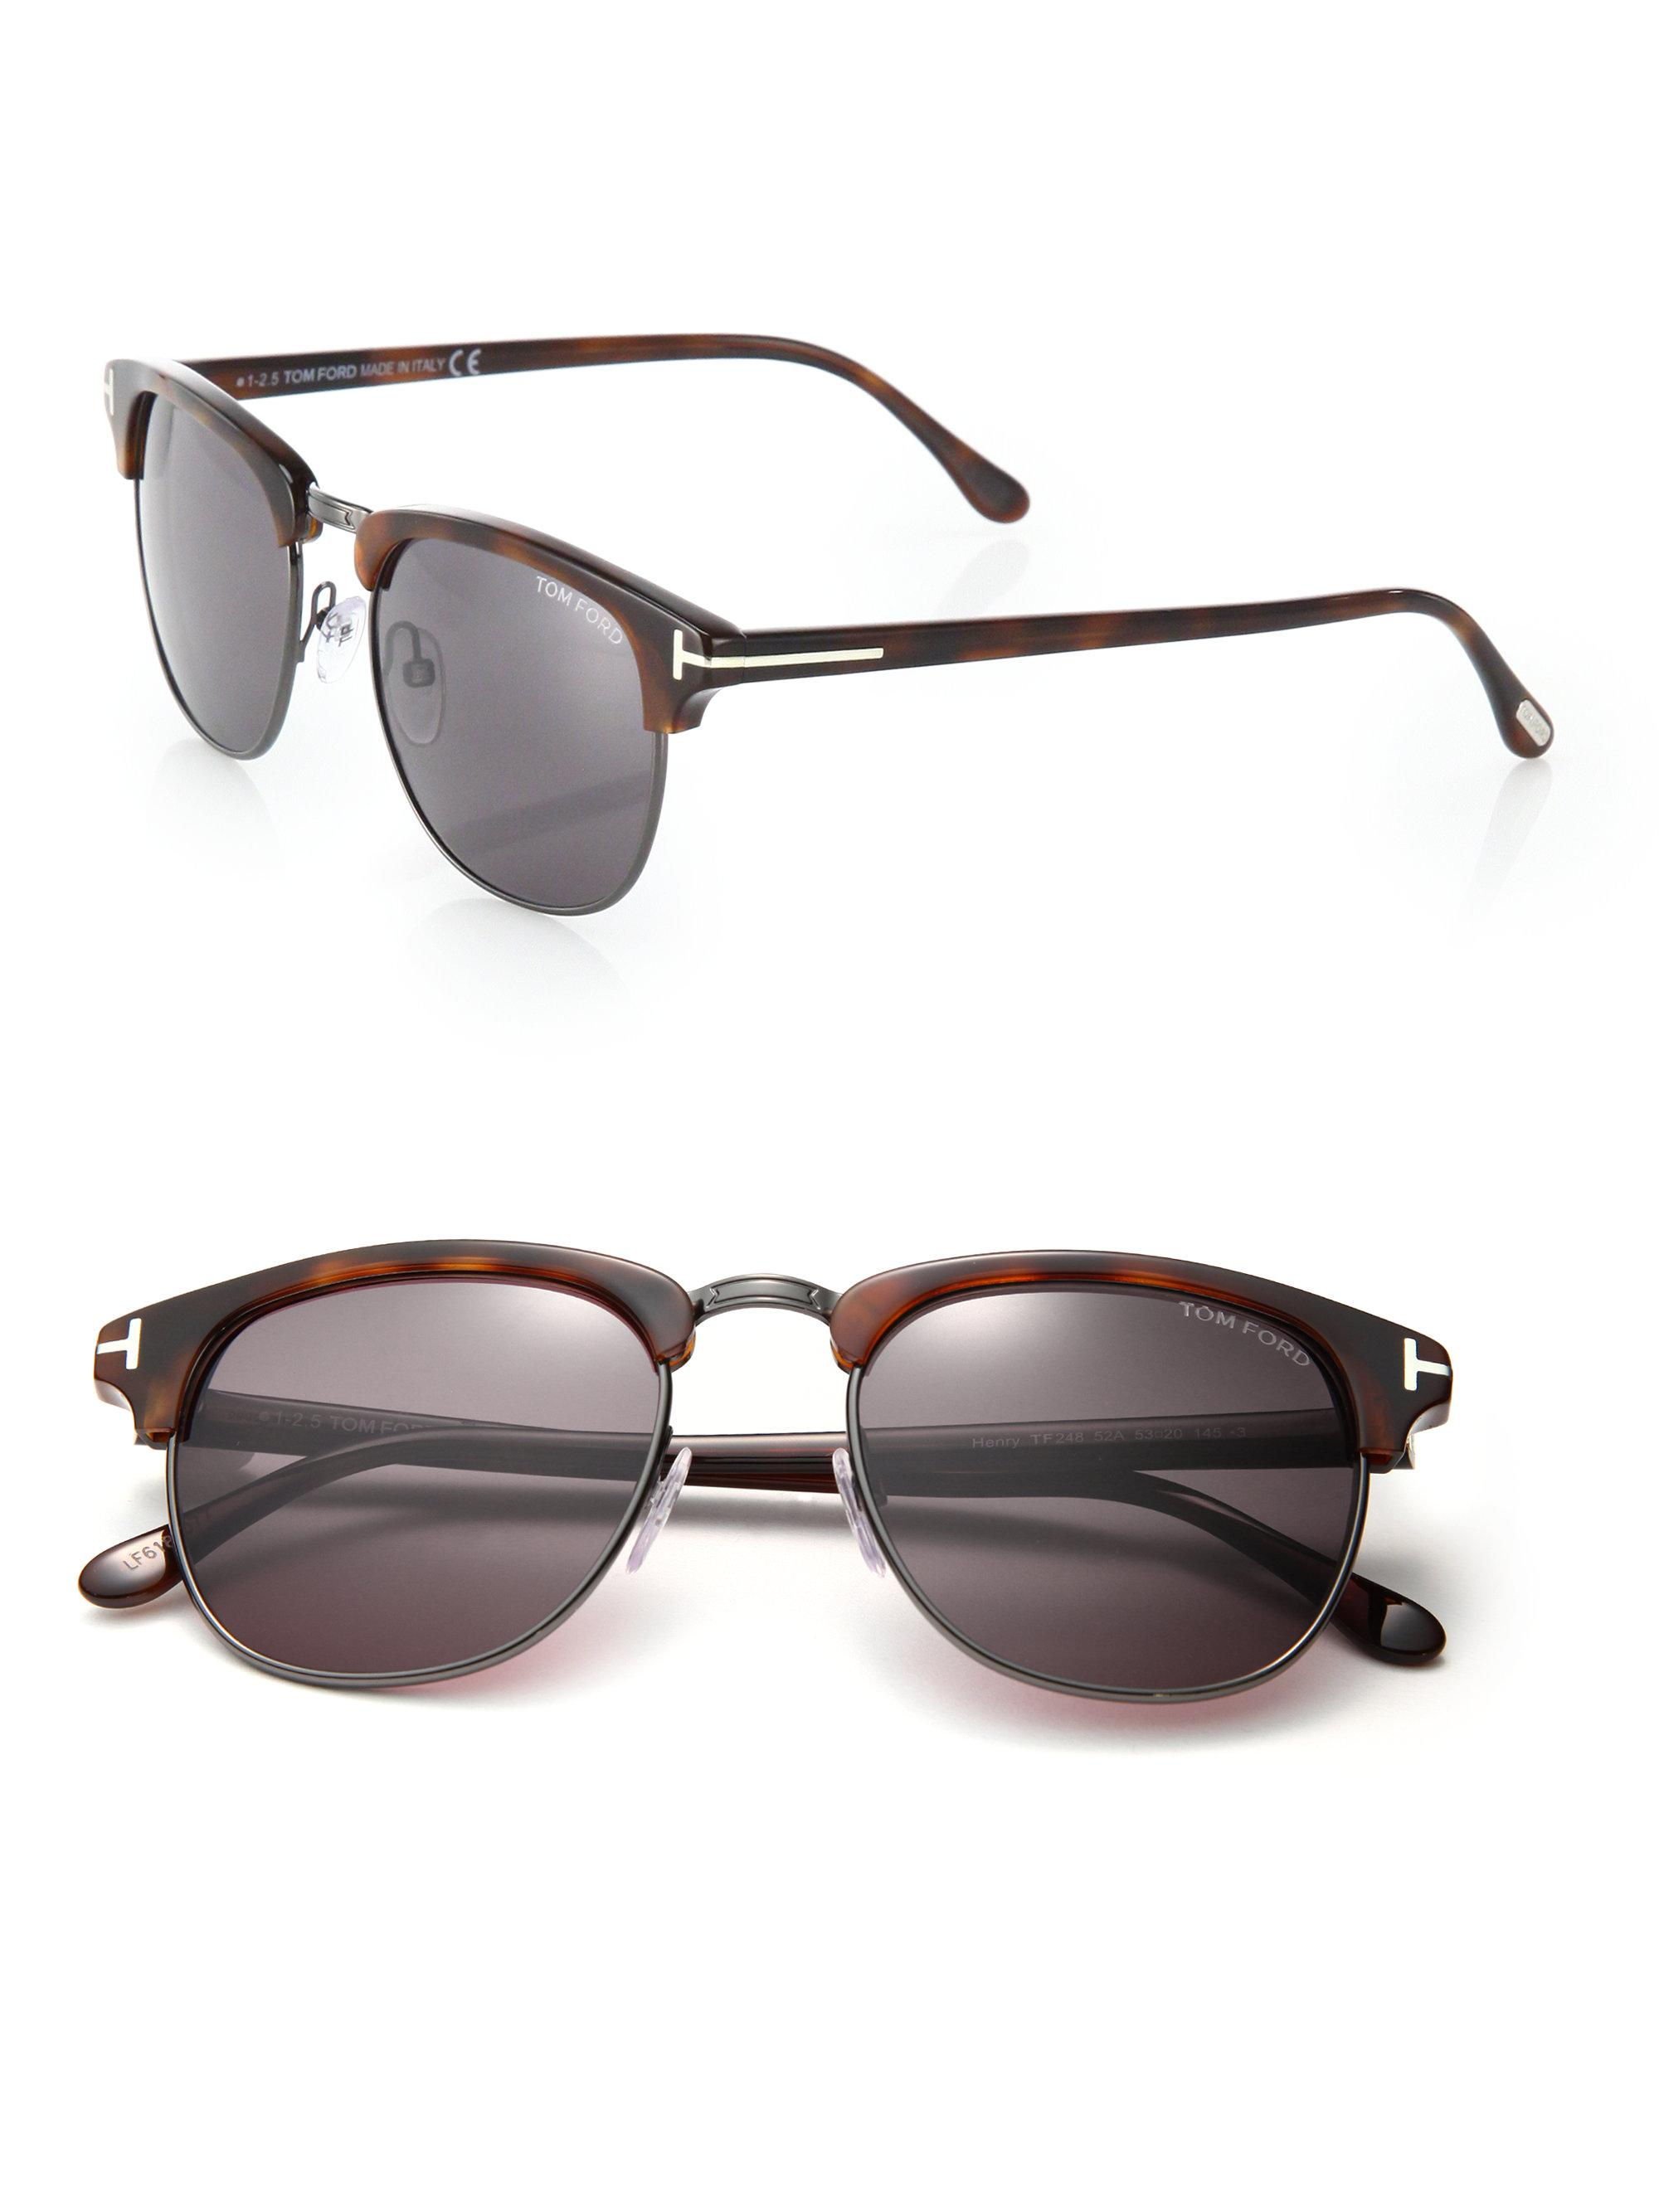 06a6b599e6f57 Tom Ford Henry 53mm Round Sunglasses in Brown for Men - Lyst